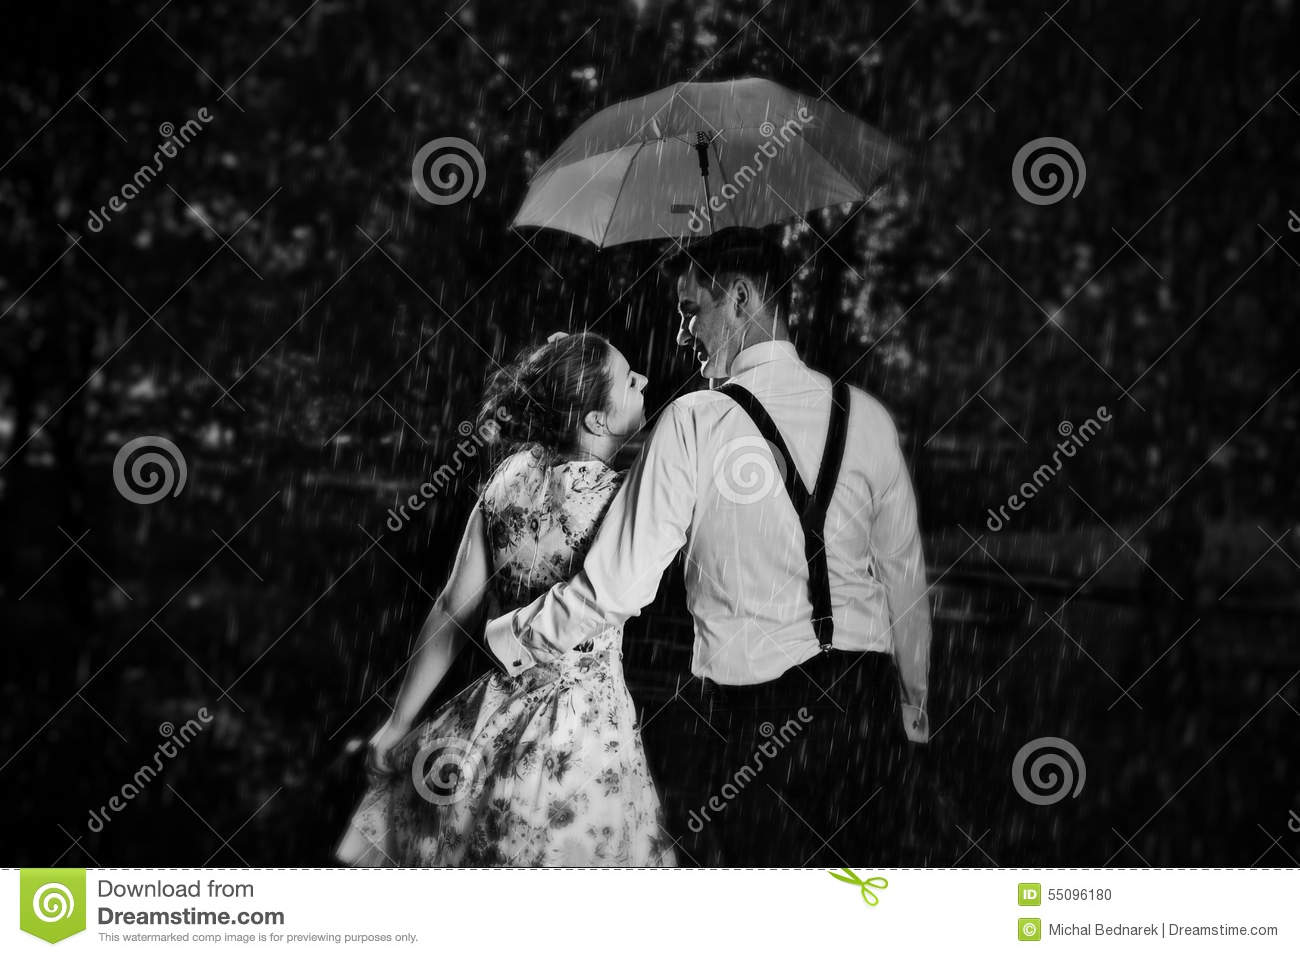 Young romantic couple in love flirting in rain men holding umbrella dating romance black and white